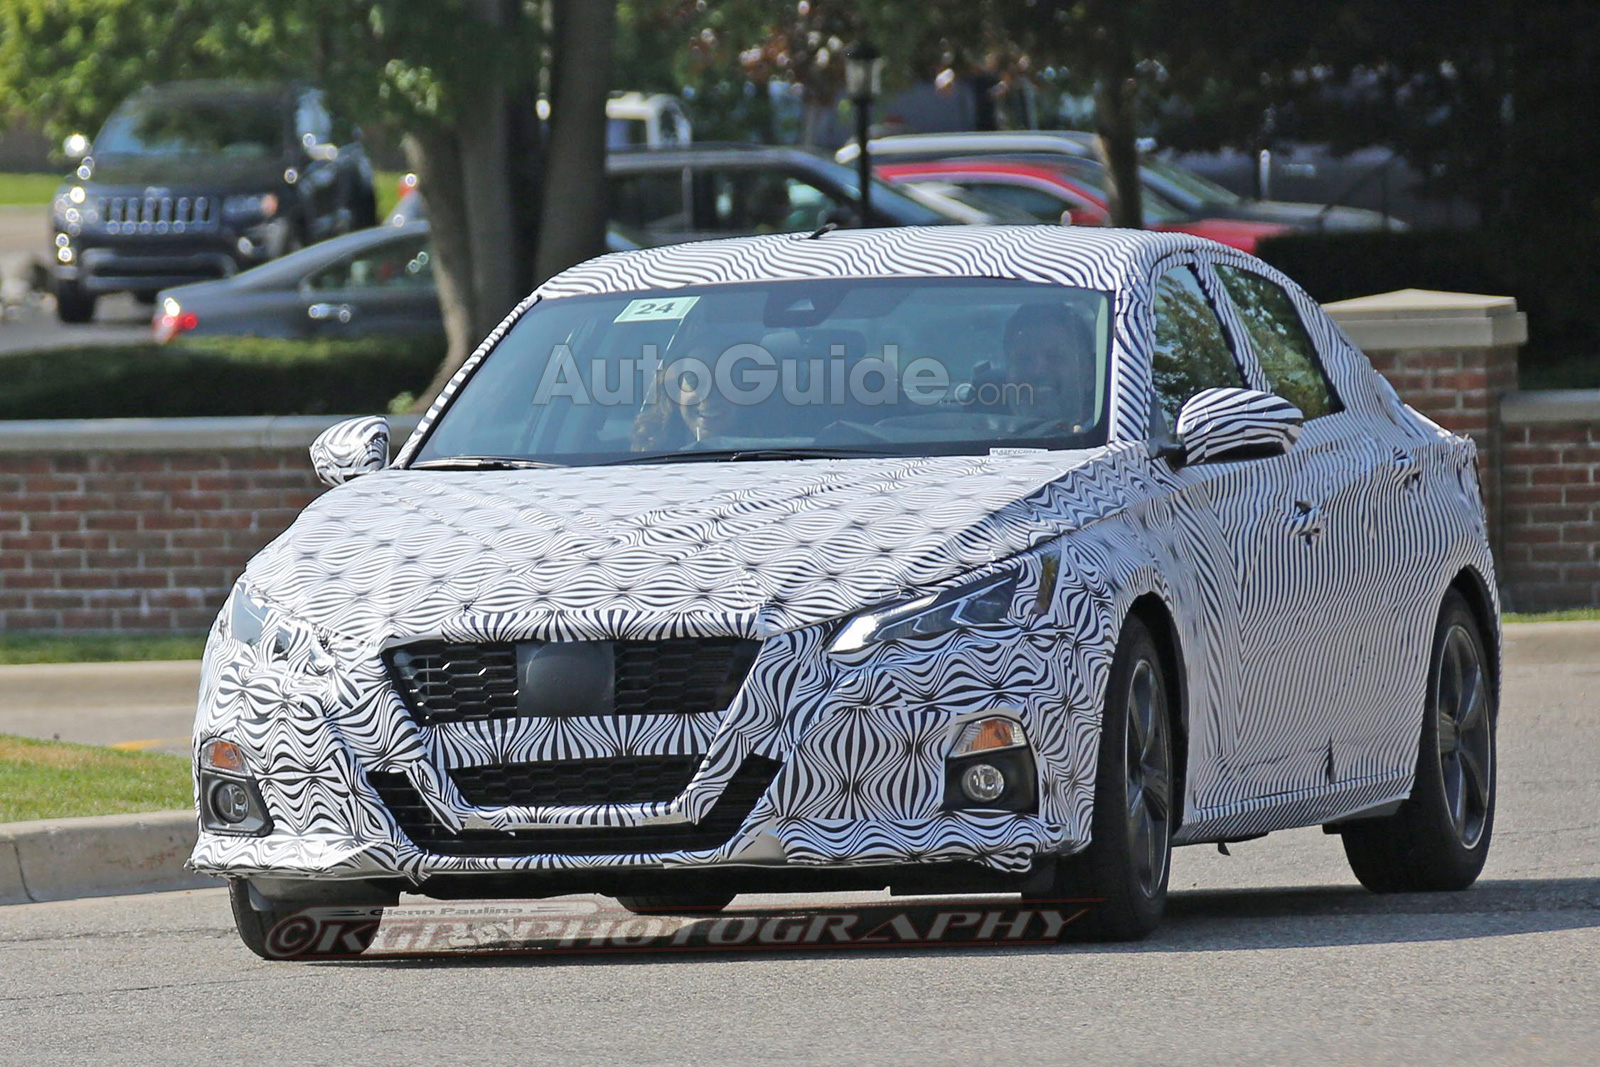 2019 Nissan Altima's New Look Revealed in Spy Photos - Nissan Forums : Nissan Forum